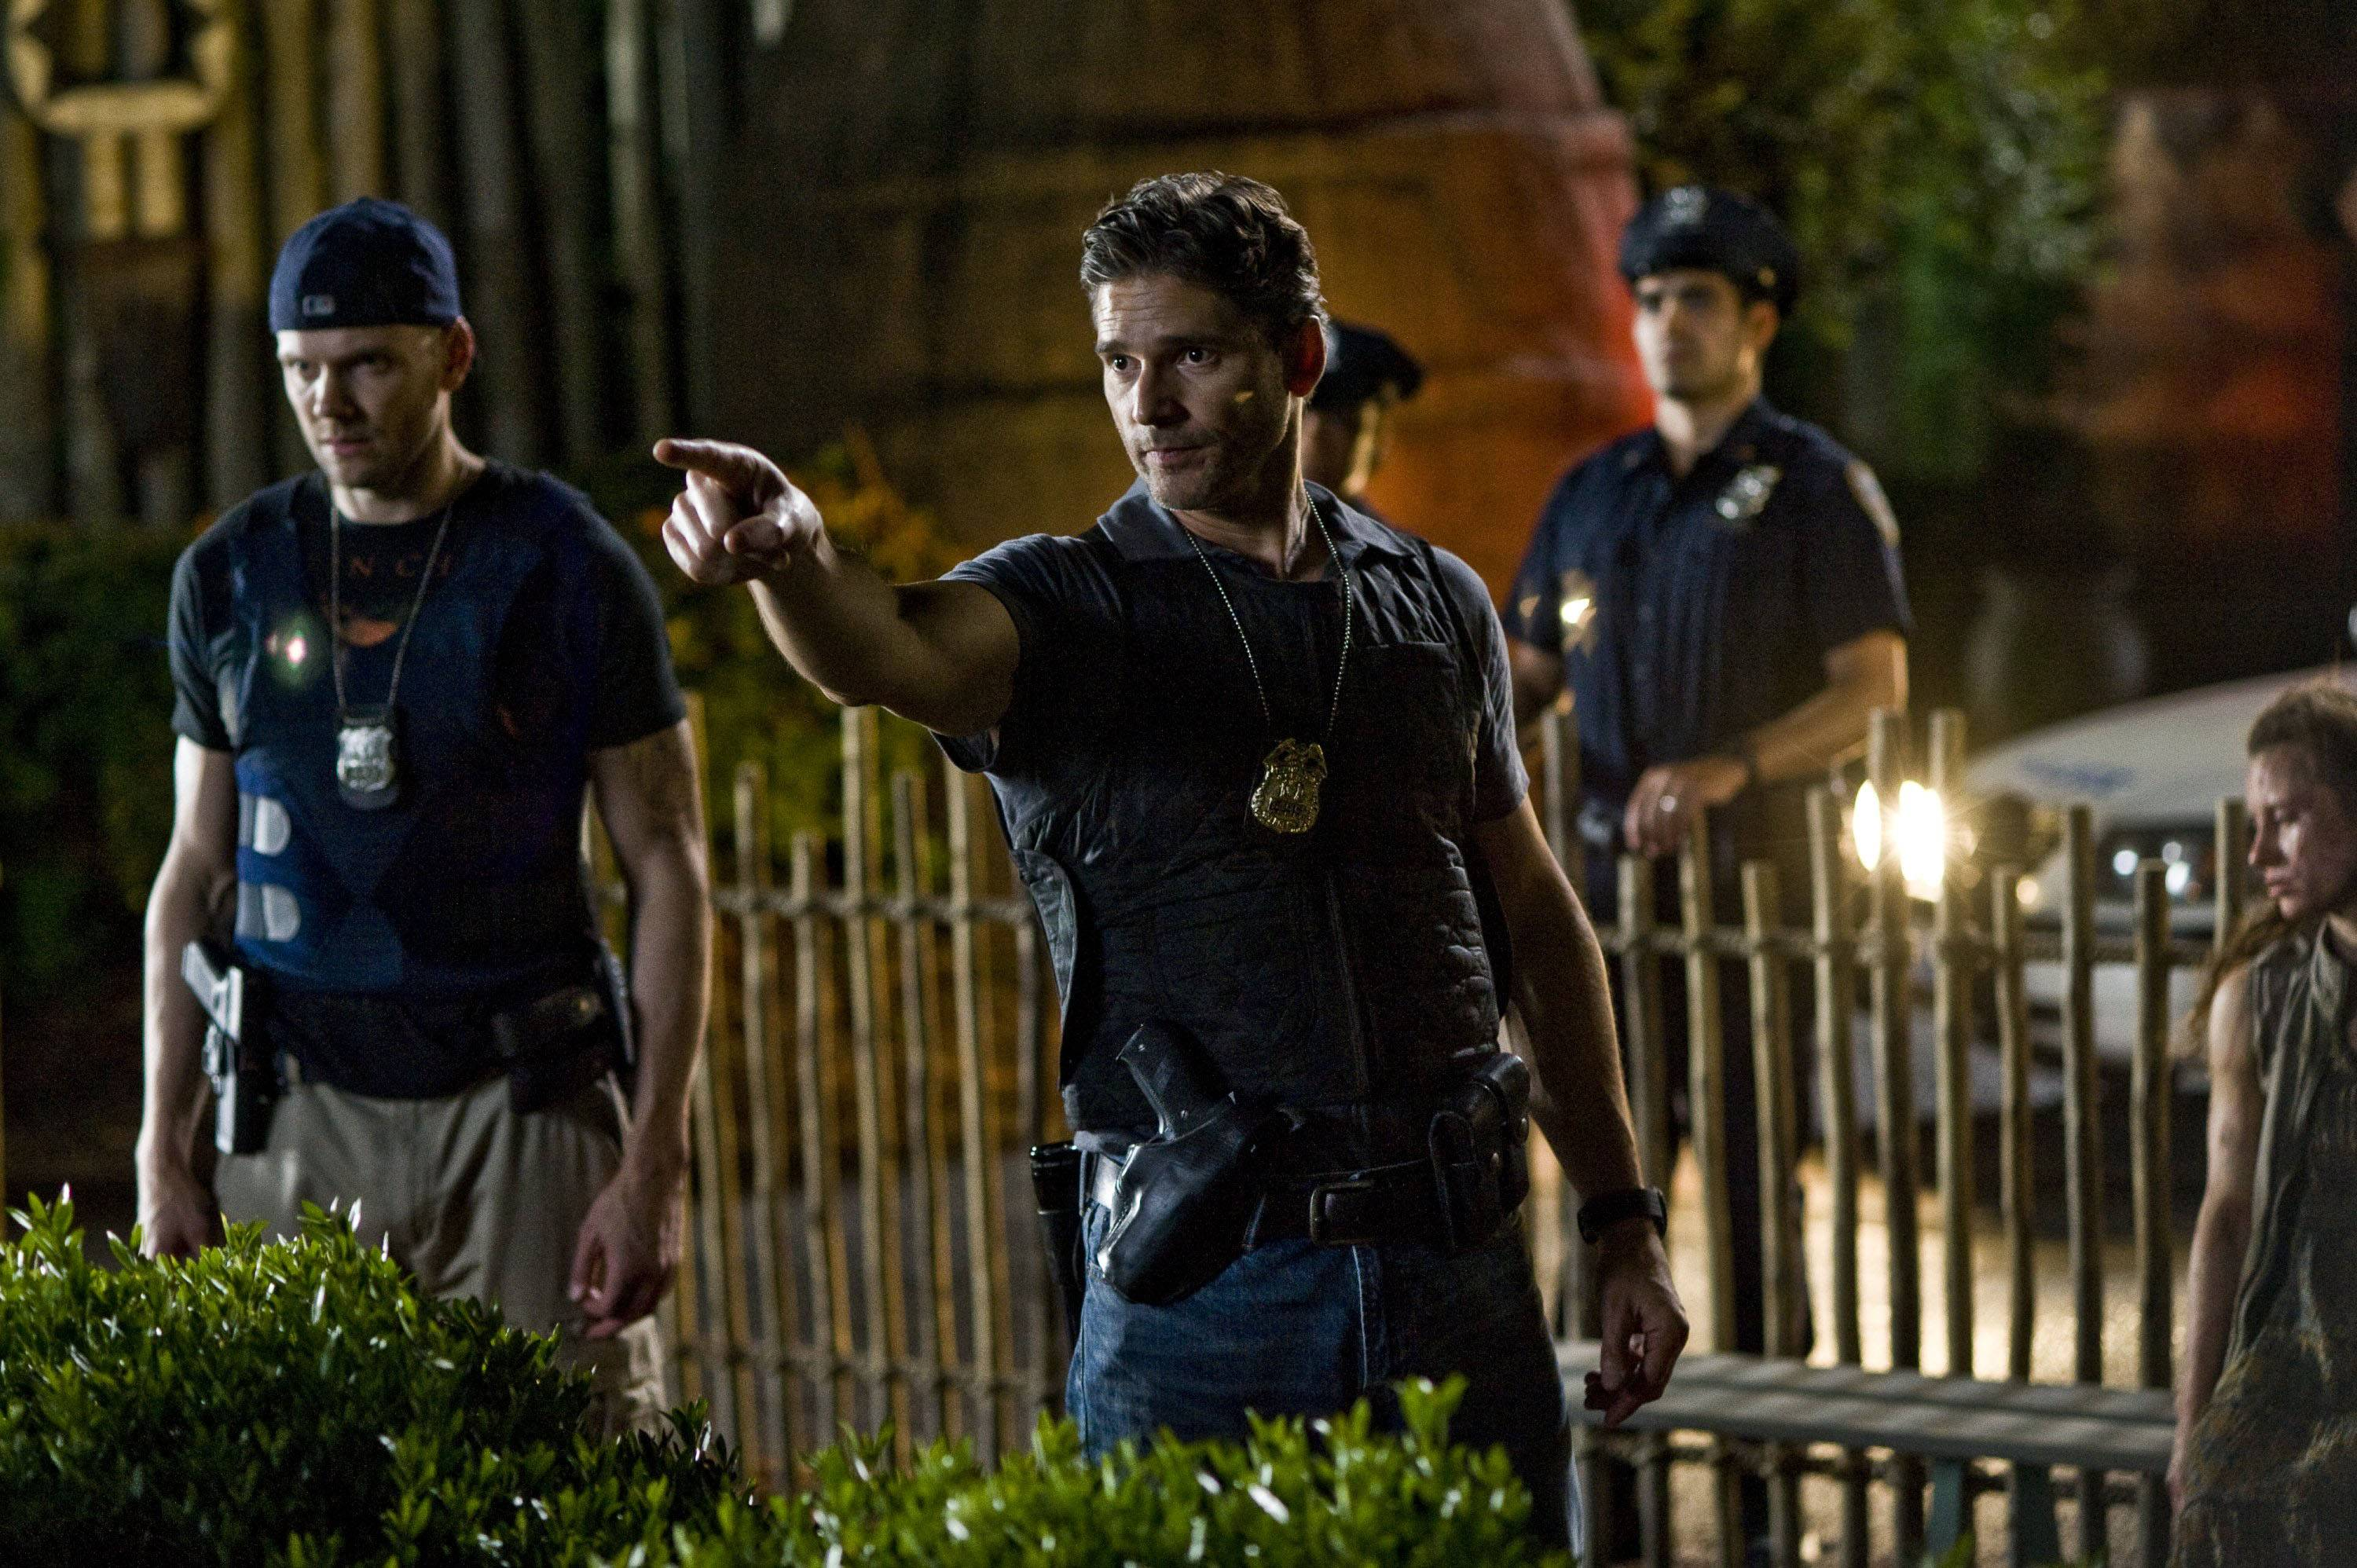 Butler (Joel McHale), left, and Sarchie (Eric Bana) confront something strange at the zoo.